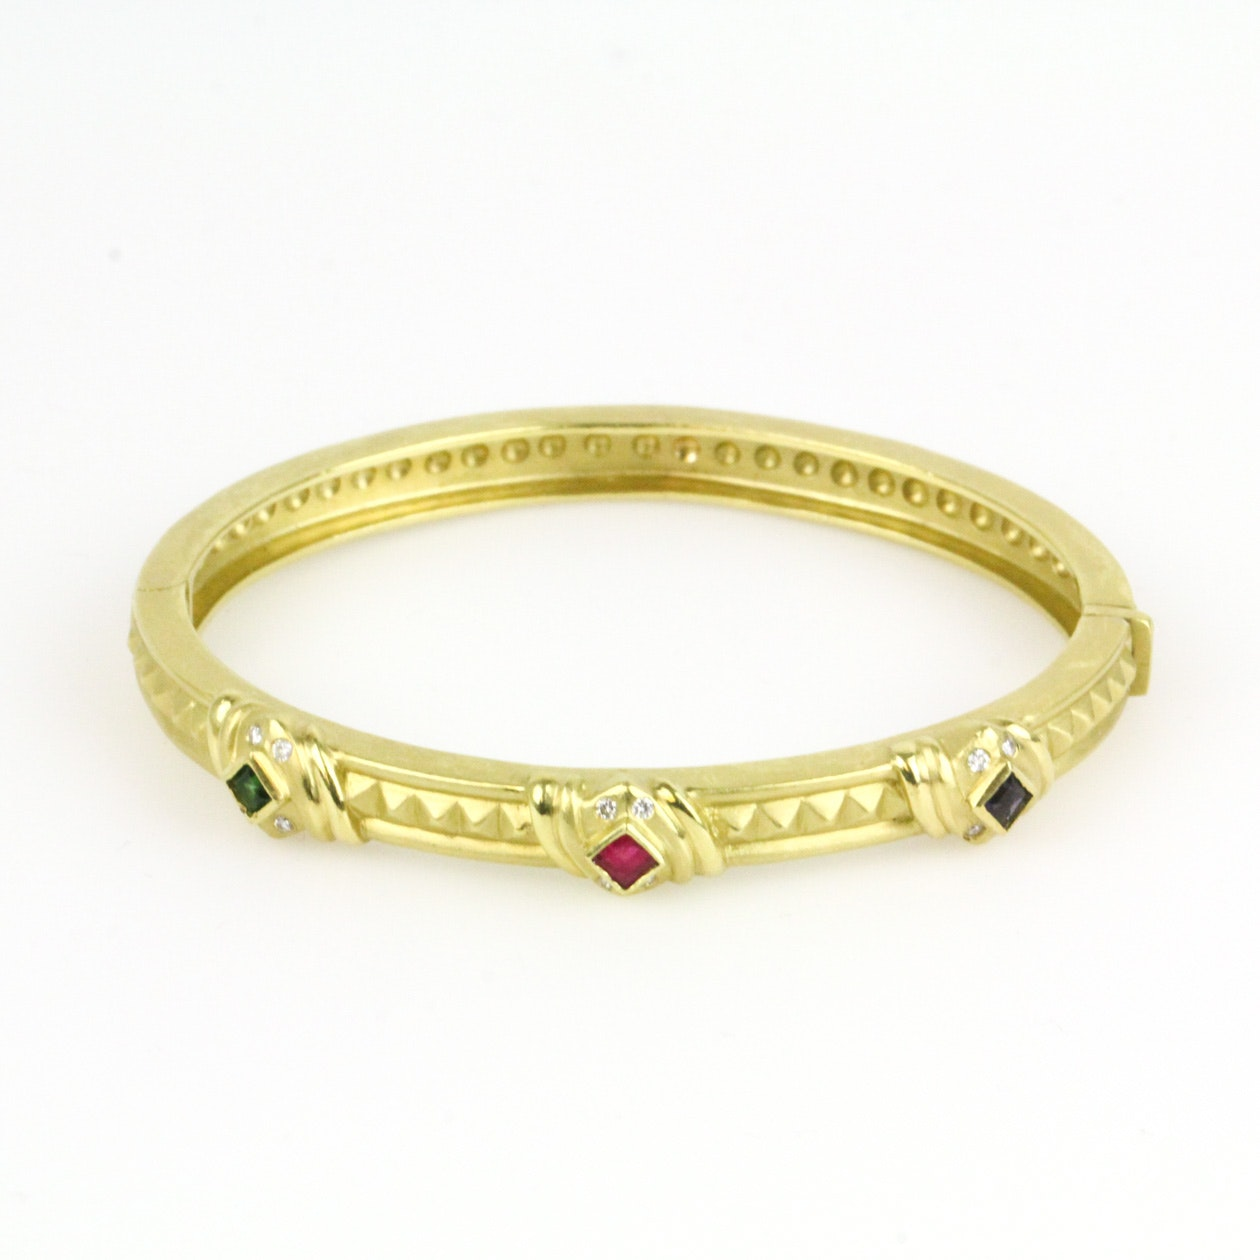 18K Yellow Gold, Sapphire, Emerald, Diamond and Ruby Clasp Bangle